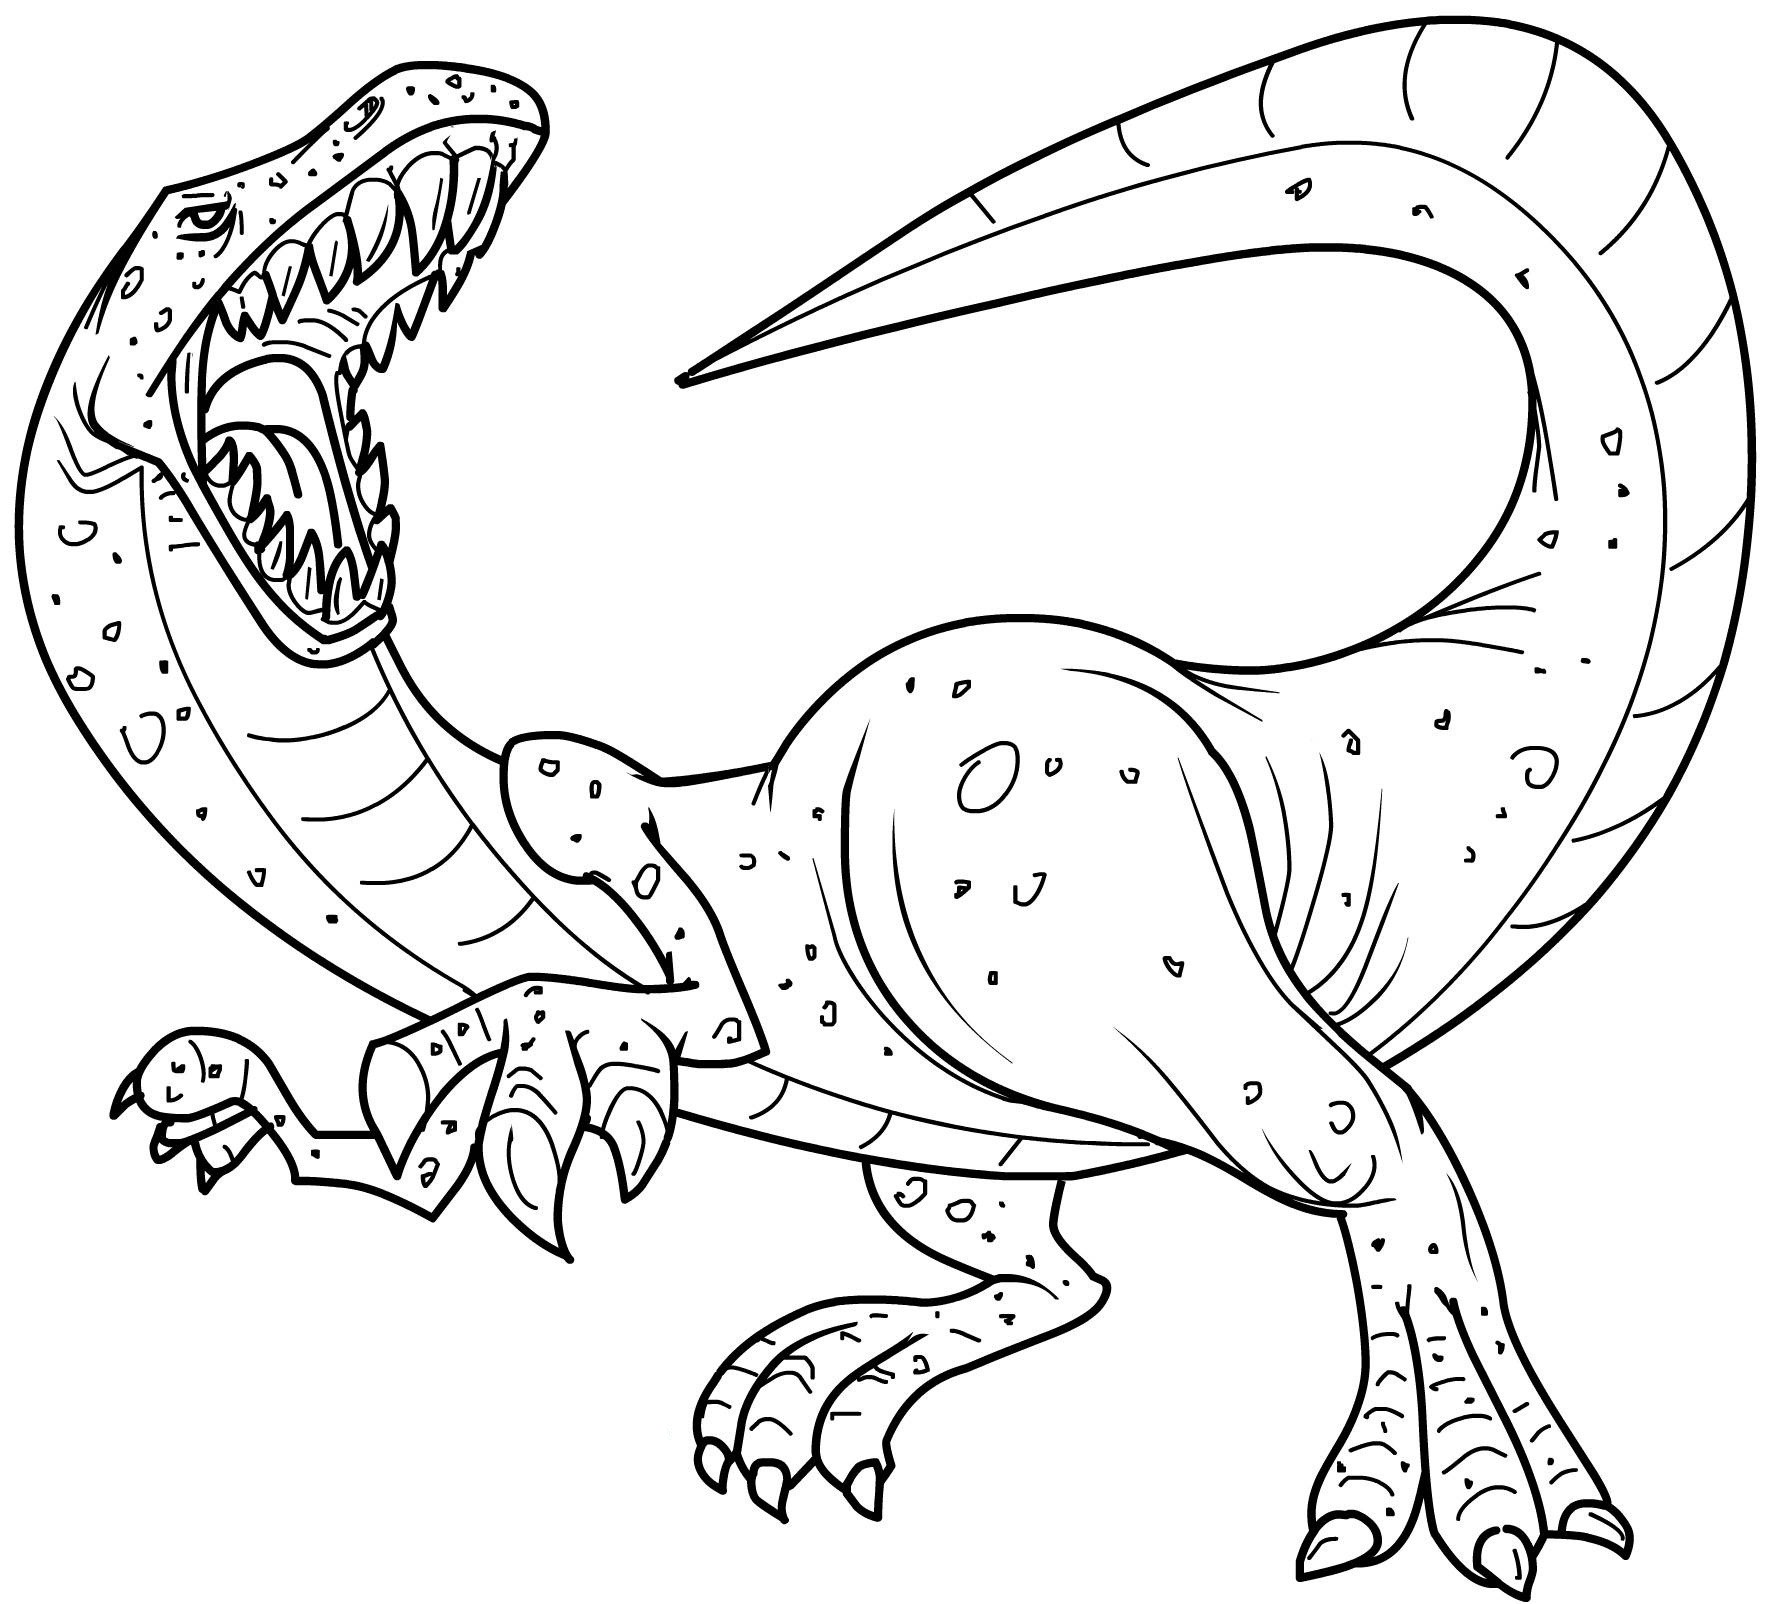 dinosaurus coloring pages - photo#4